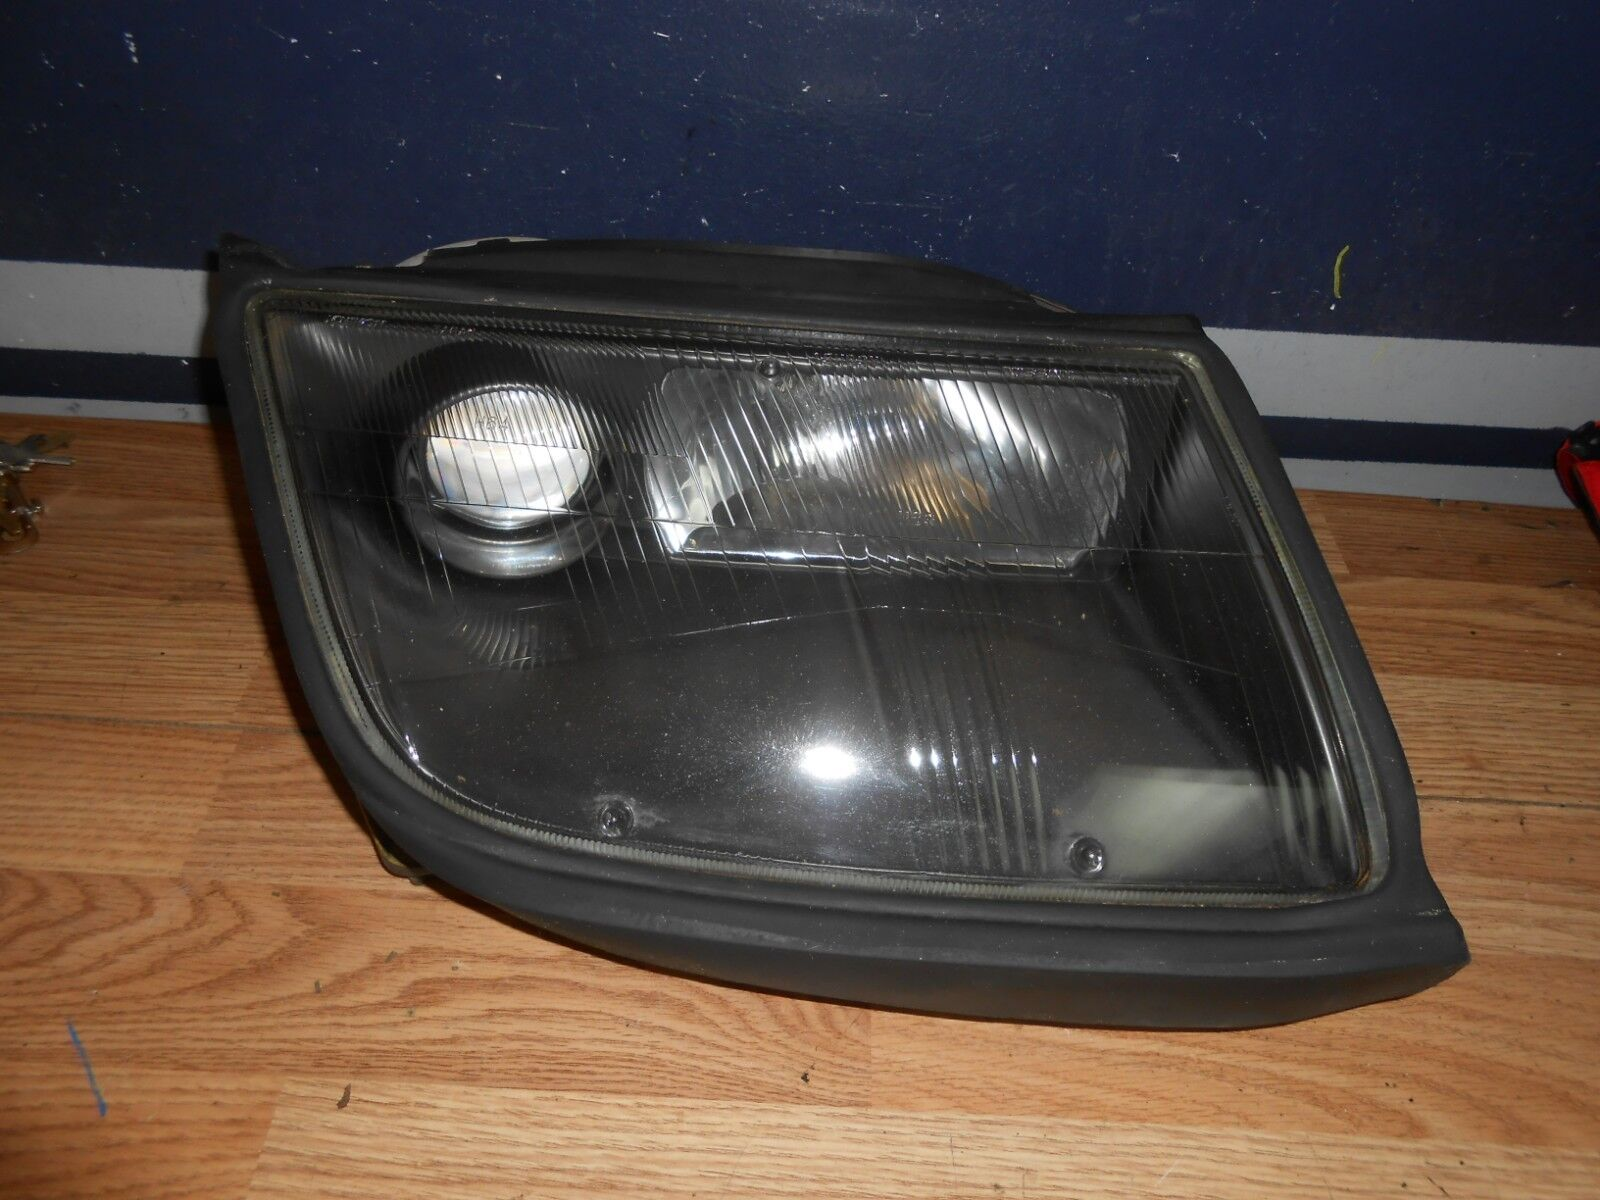 Used 1990 Nissan 300zx Headlights For Sale